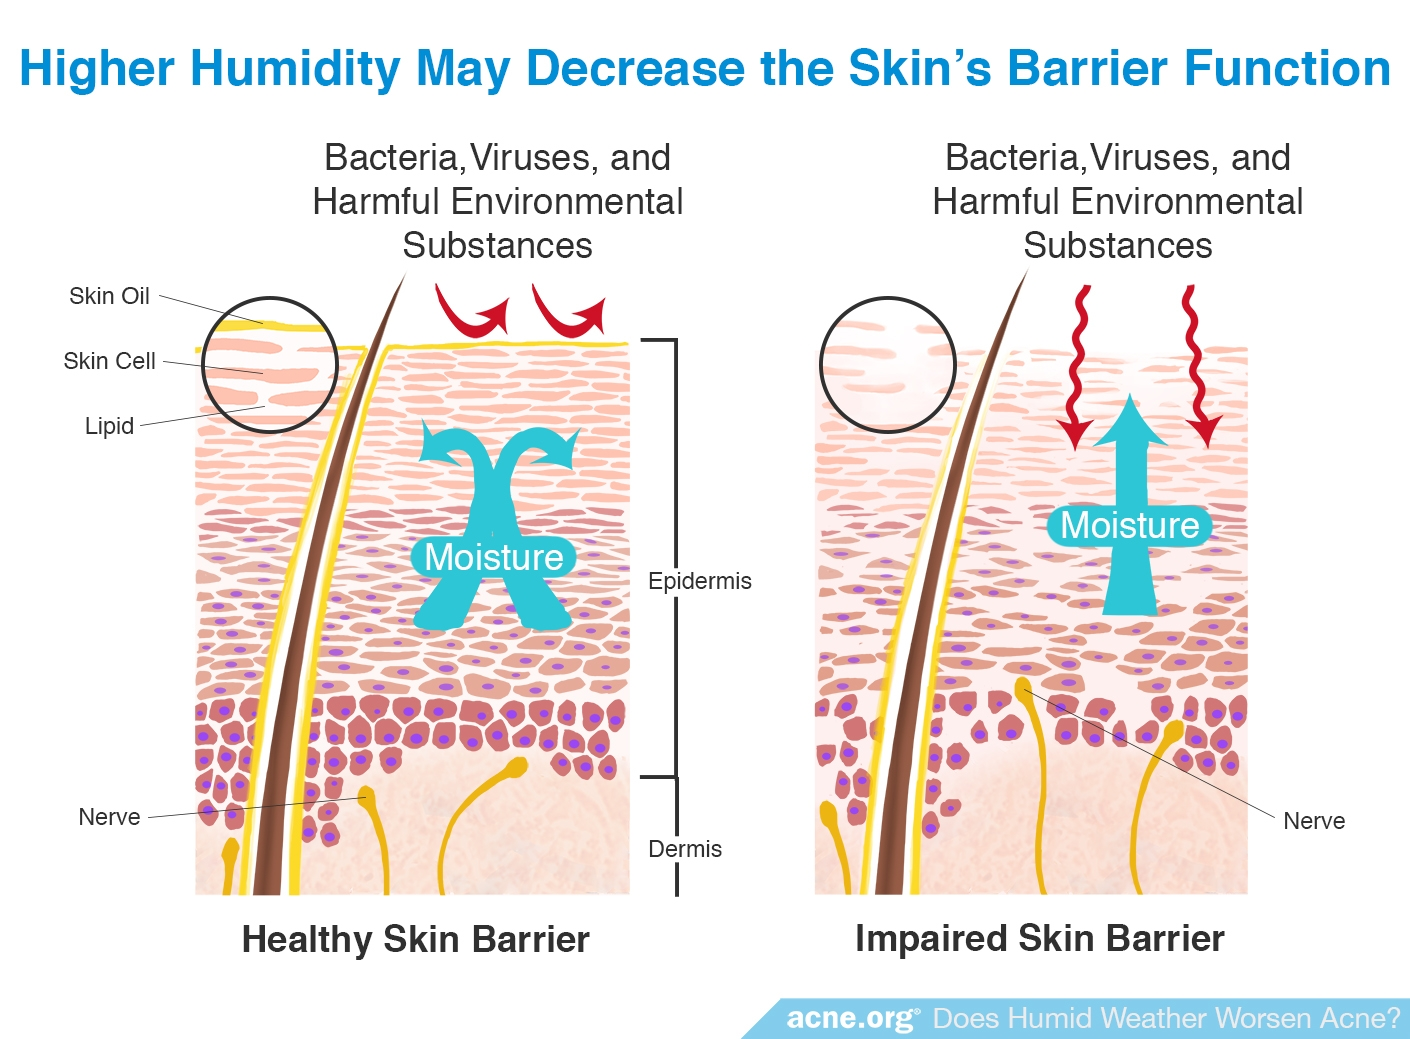 Higher Humidity May Decrease the Skin's Barrier Function